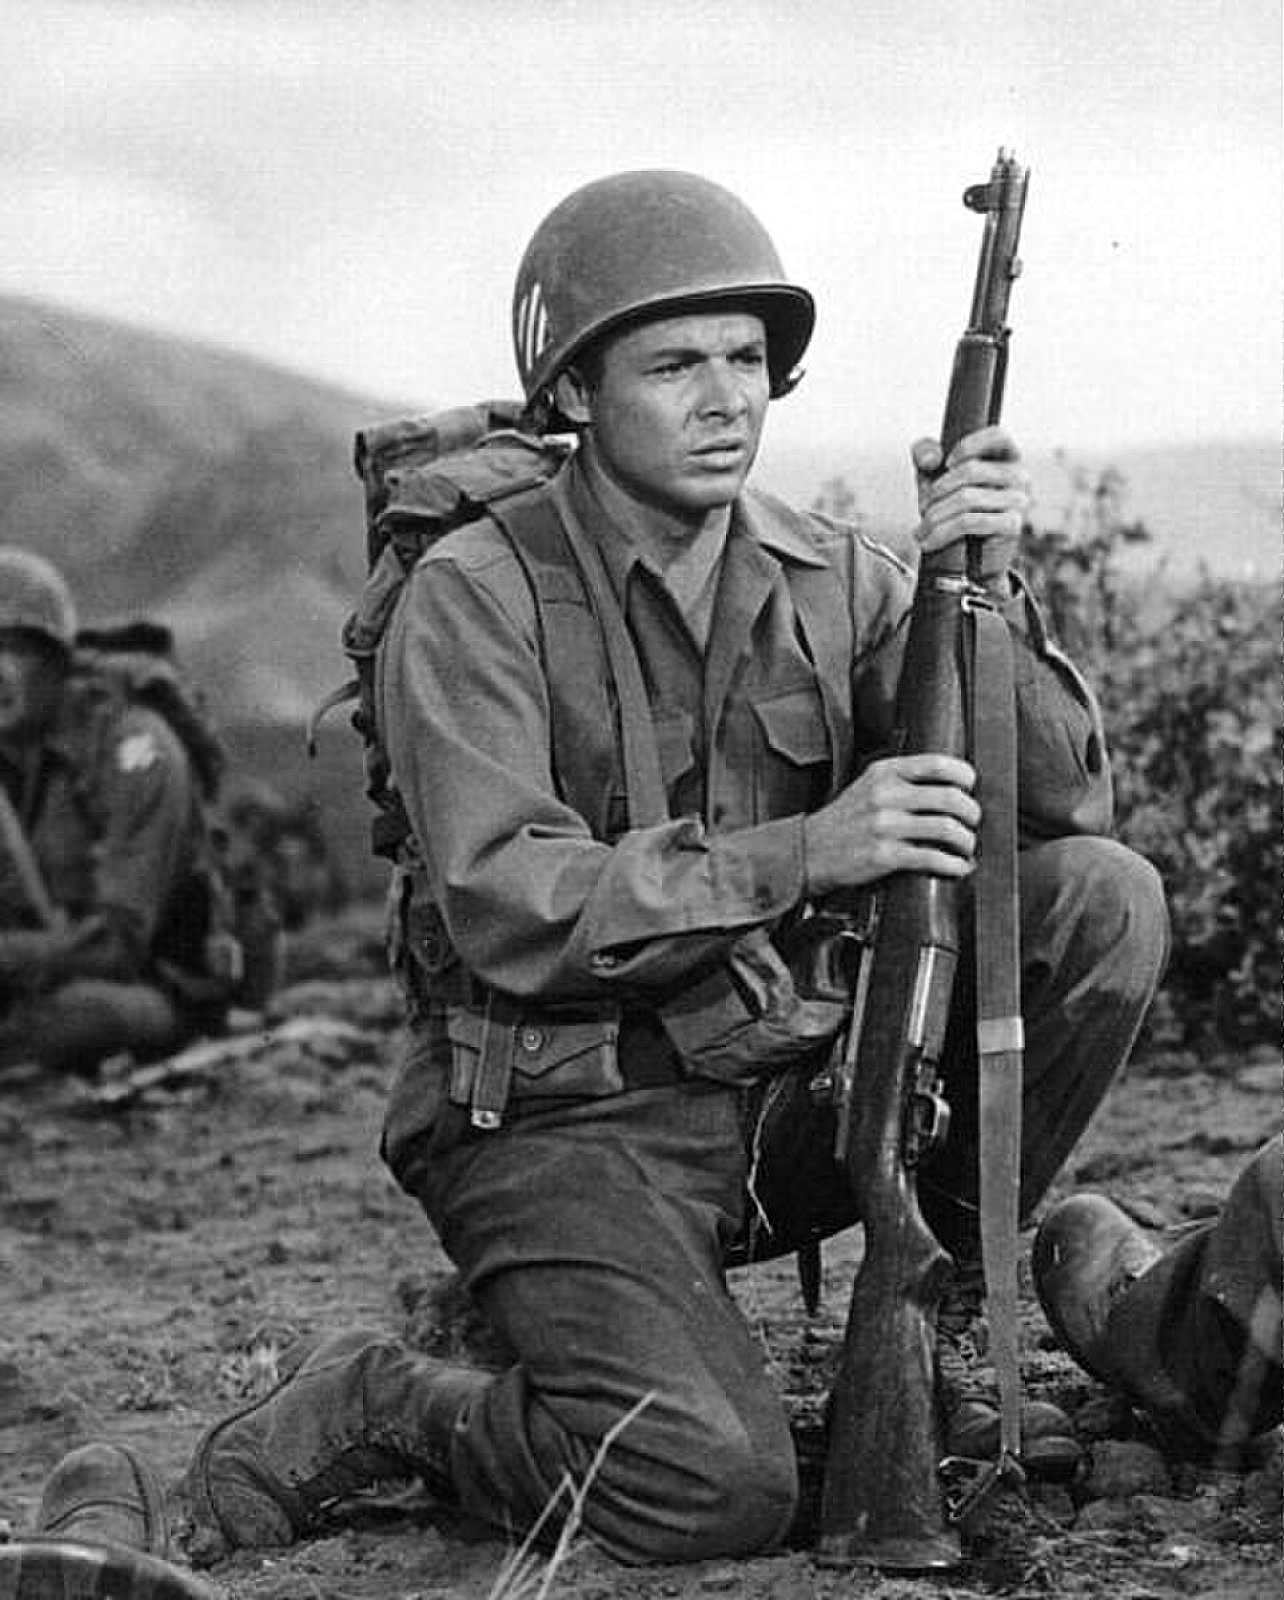 Audie Murphy, who later starred in his autobiographical movie, saw heavy fighting at Anzio.